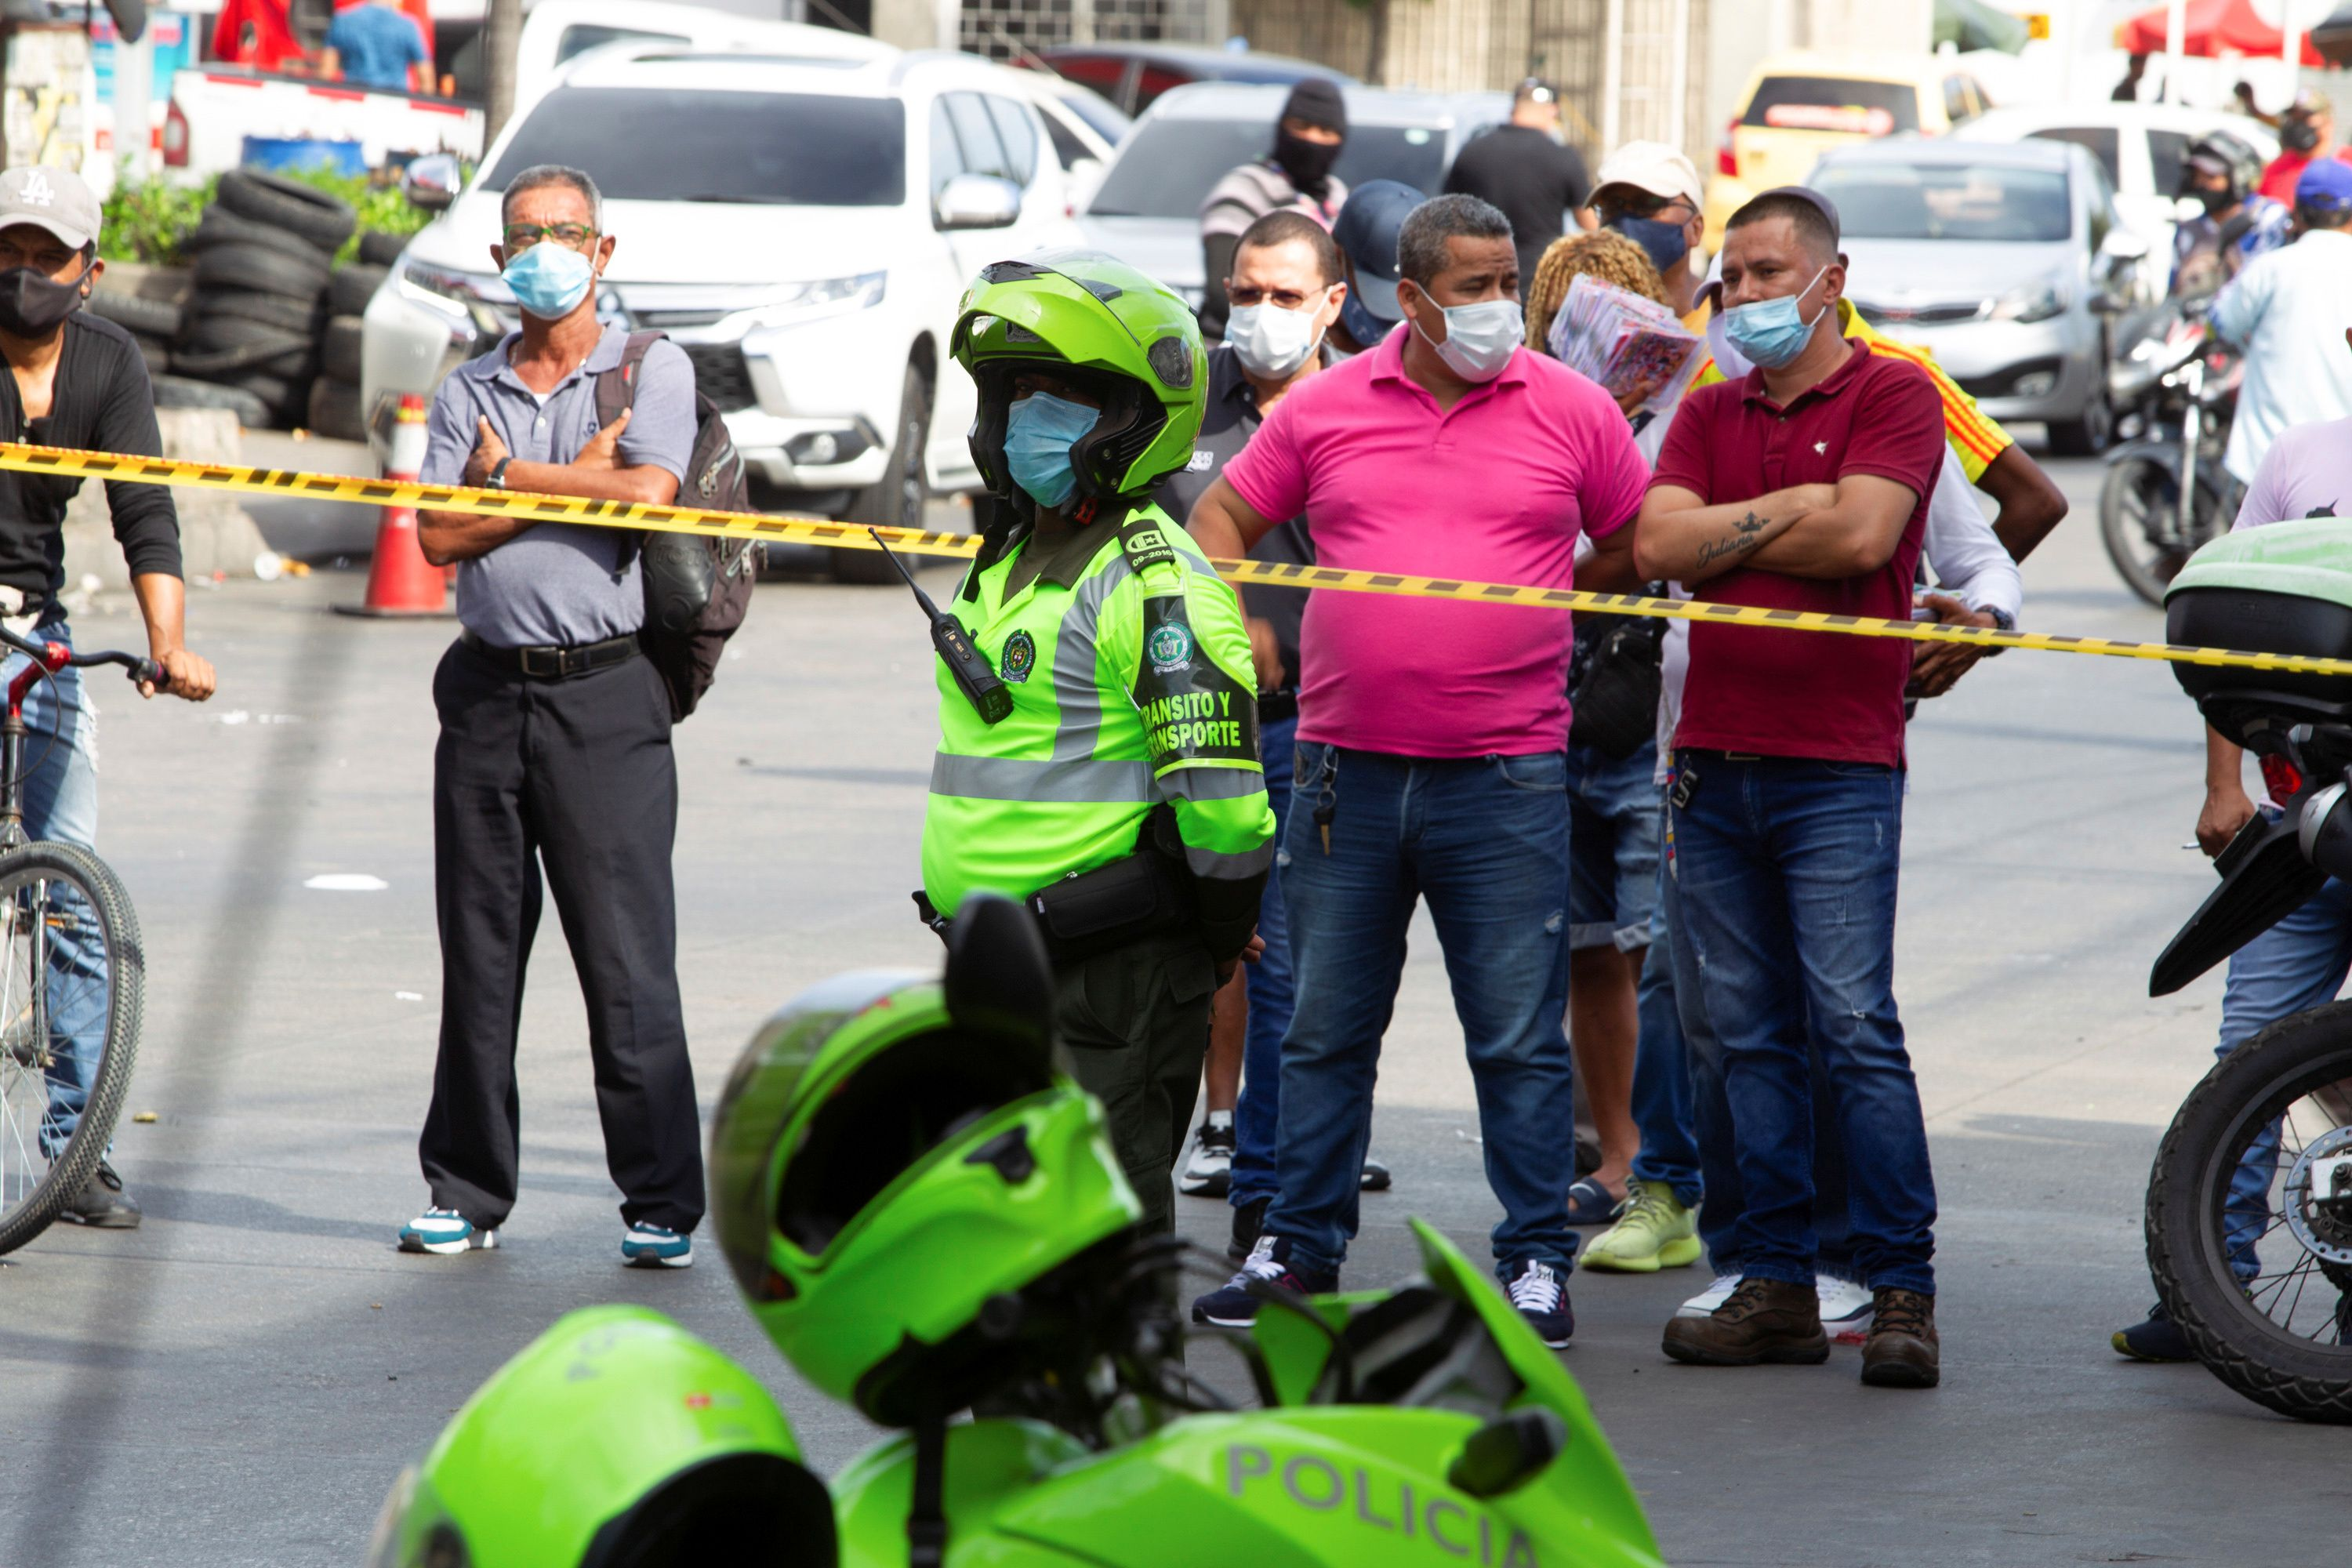 A police officer wearing a face mask patrols the area where criminals set off an explosion which occurred in the center of the city, according to authorities, in Barranquilla, Colombia January 12, 2021. REUTERS/Stringer NO RESALES. NO ARCHIVES